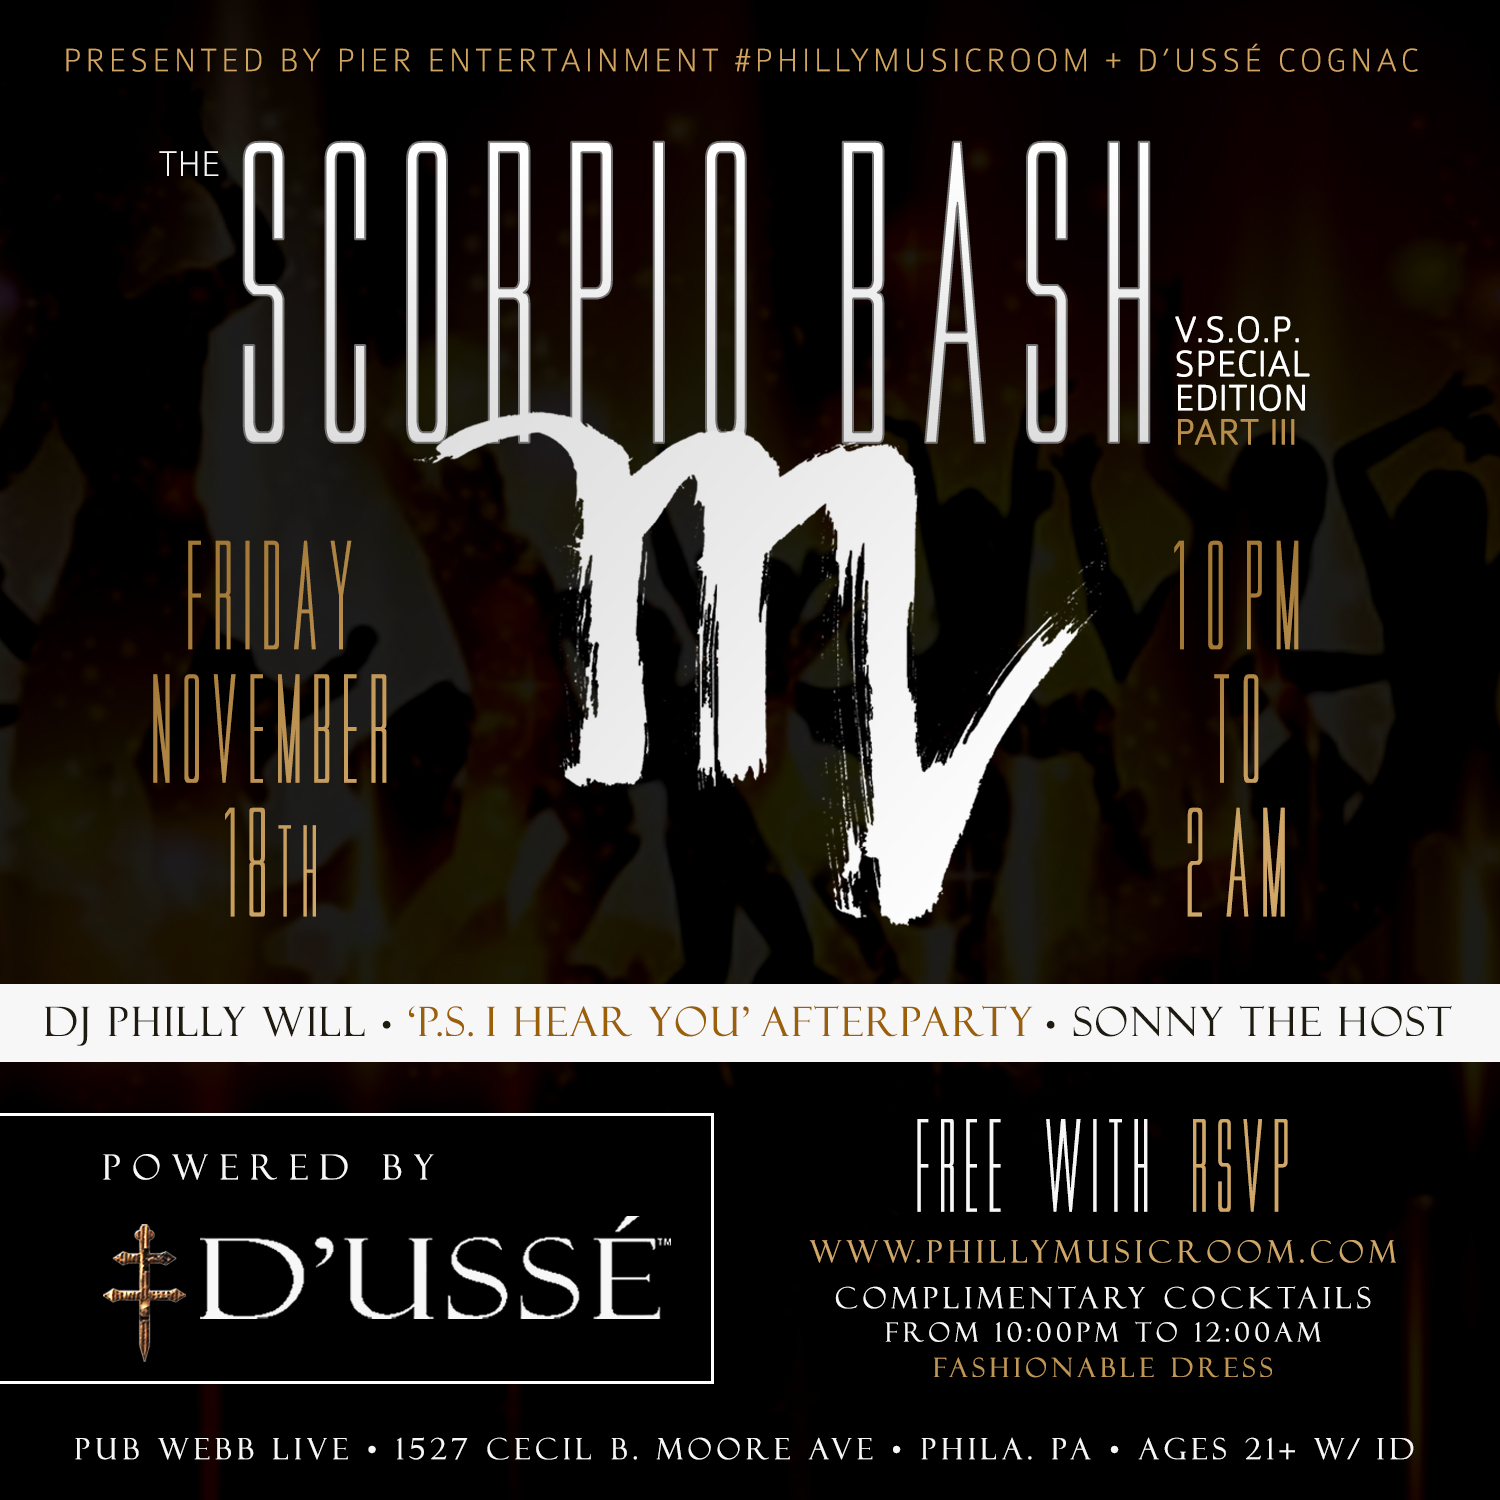 Philly Music Room Presents THE SCORPIO BASH Powered by D'USSE